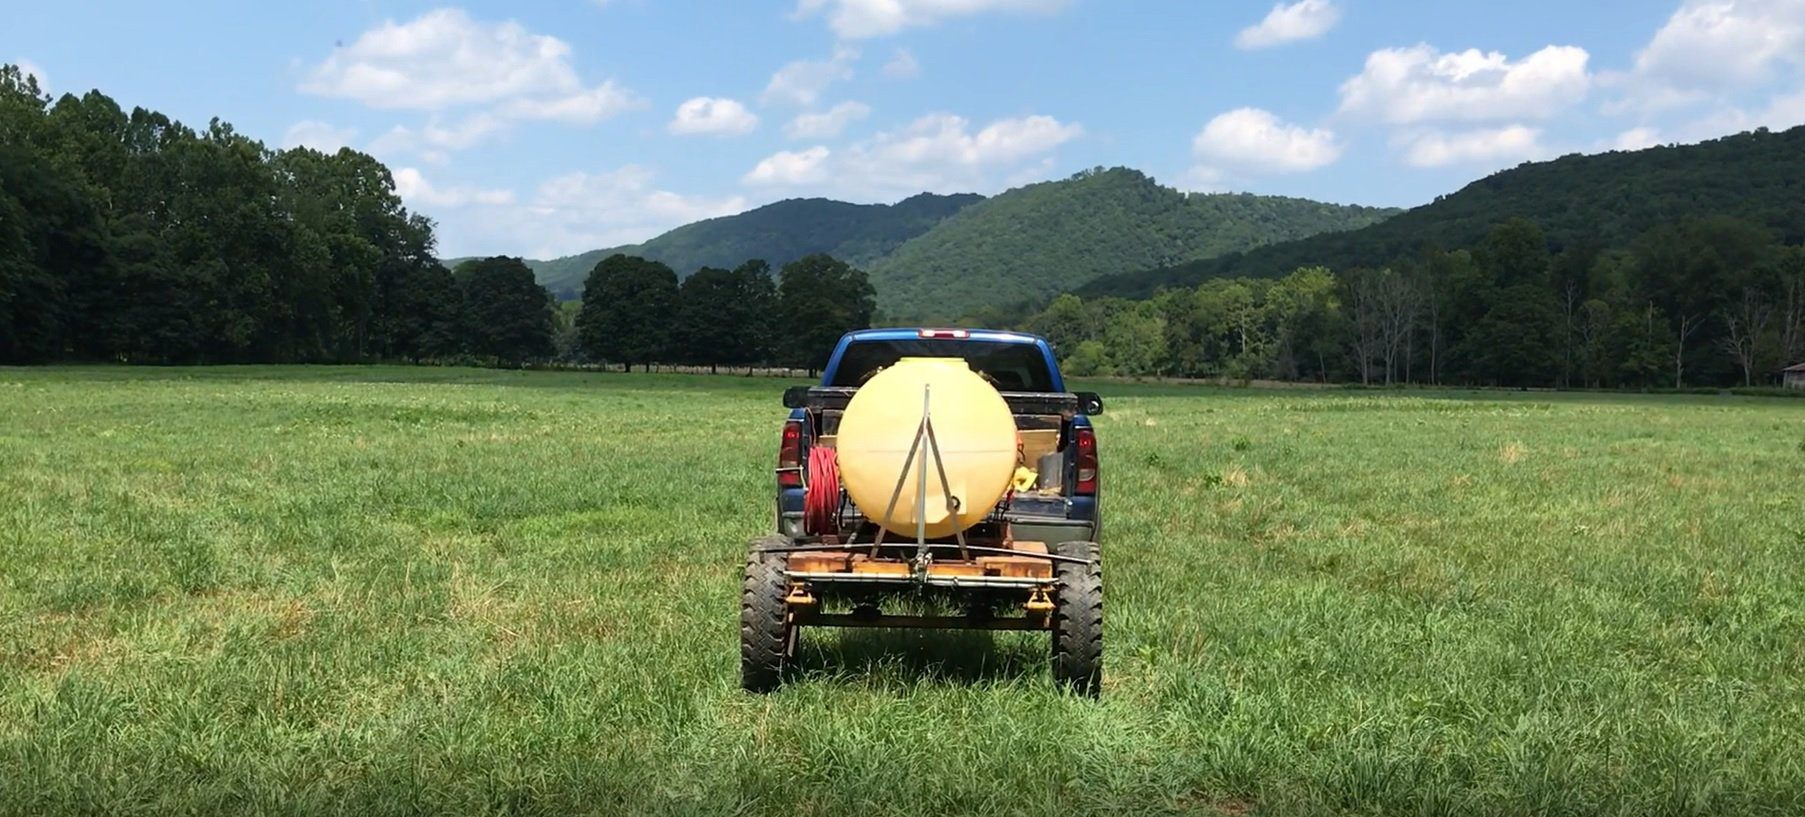 Field Sprayer, D.A.B. Land Management